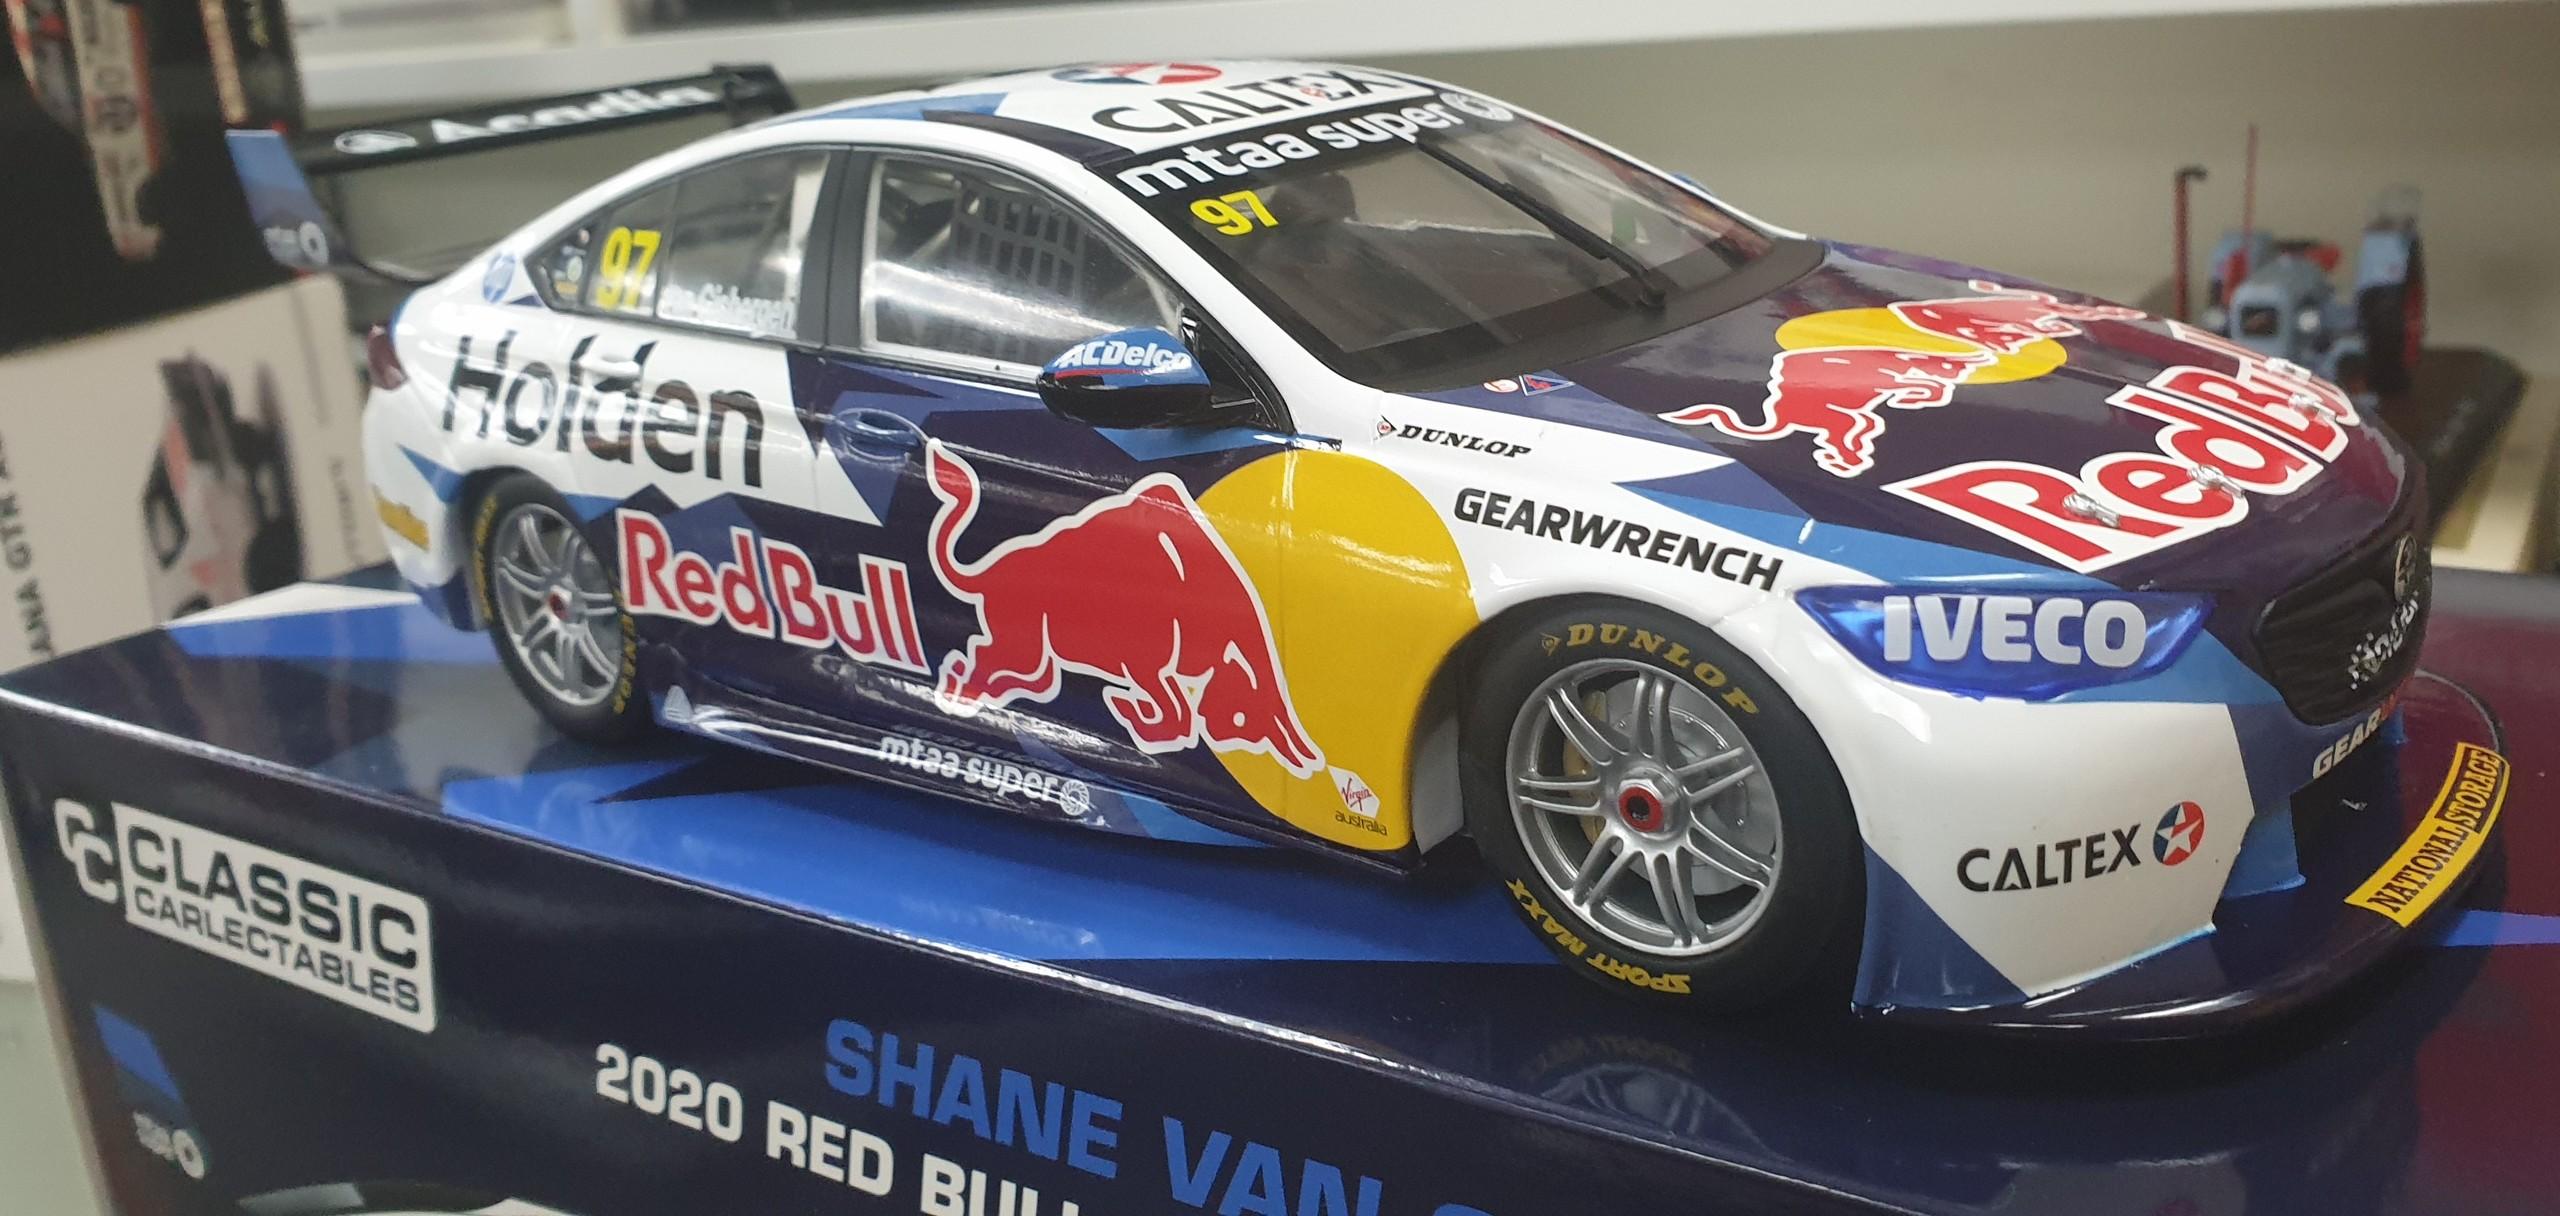 1/18 Holden Commodore ZB V8 Supercar 2020 Shane Van Gisbergen Red Bull